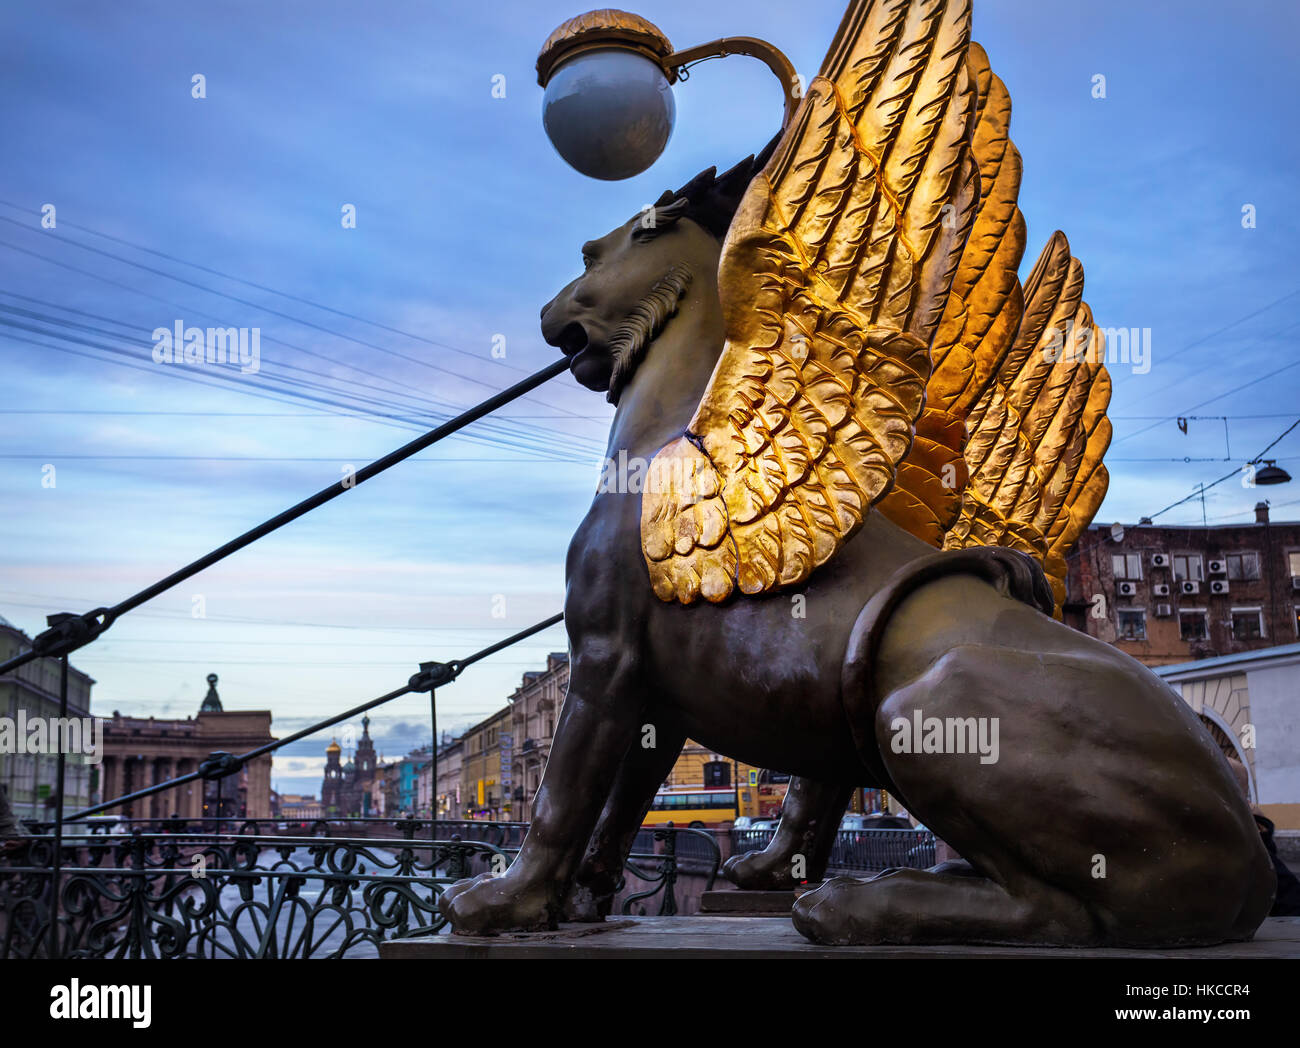 Griffins with golden wings on the Bank Bridge in Saint Petersburg, Russia - Stock Image